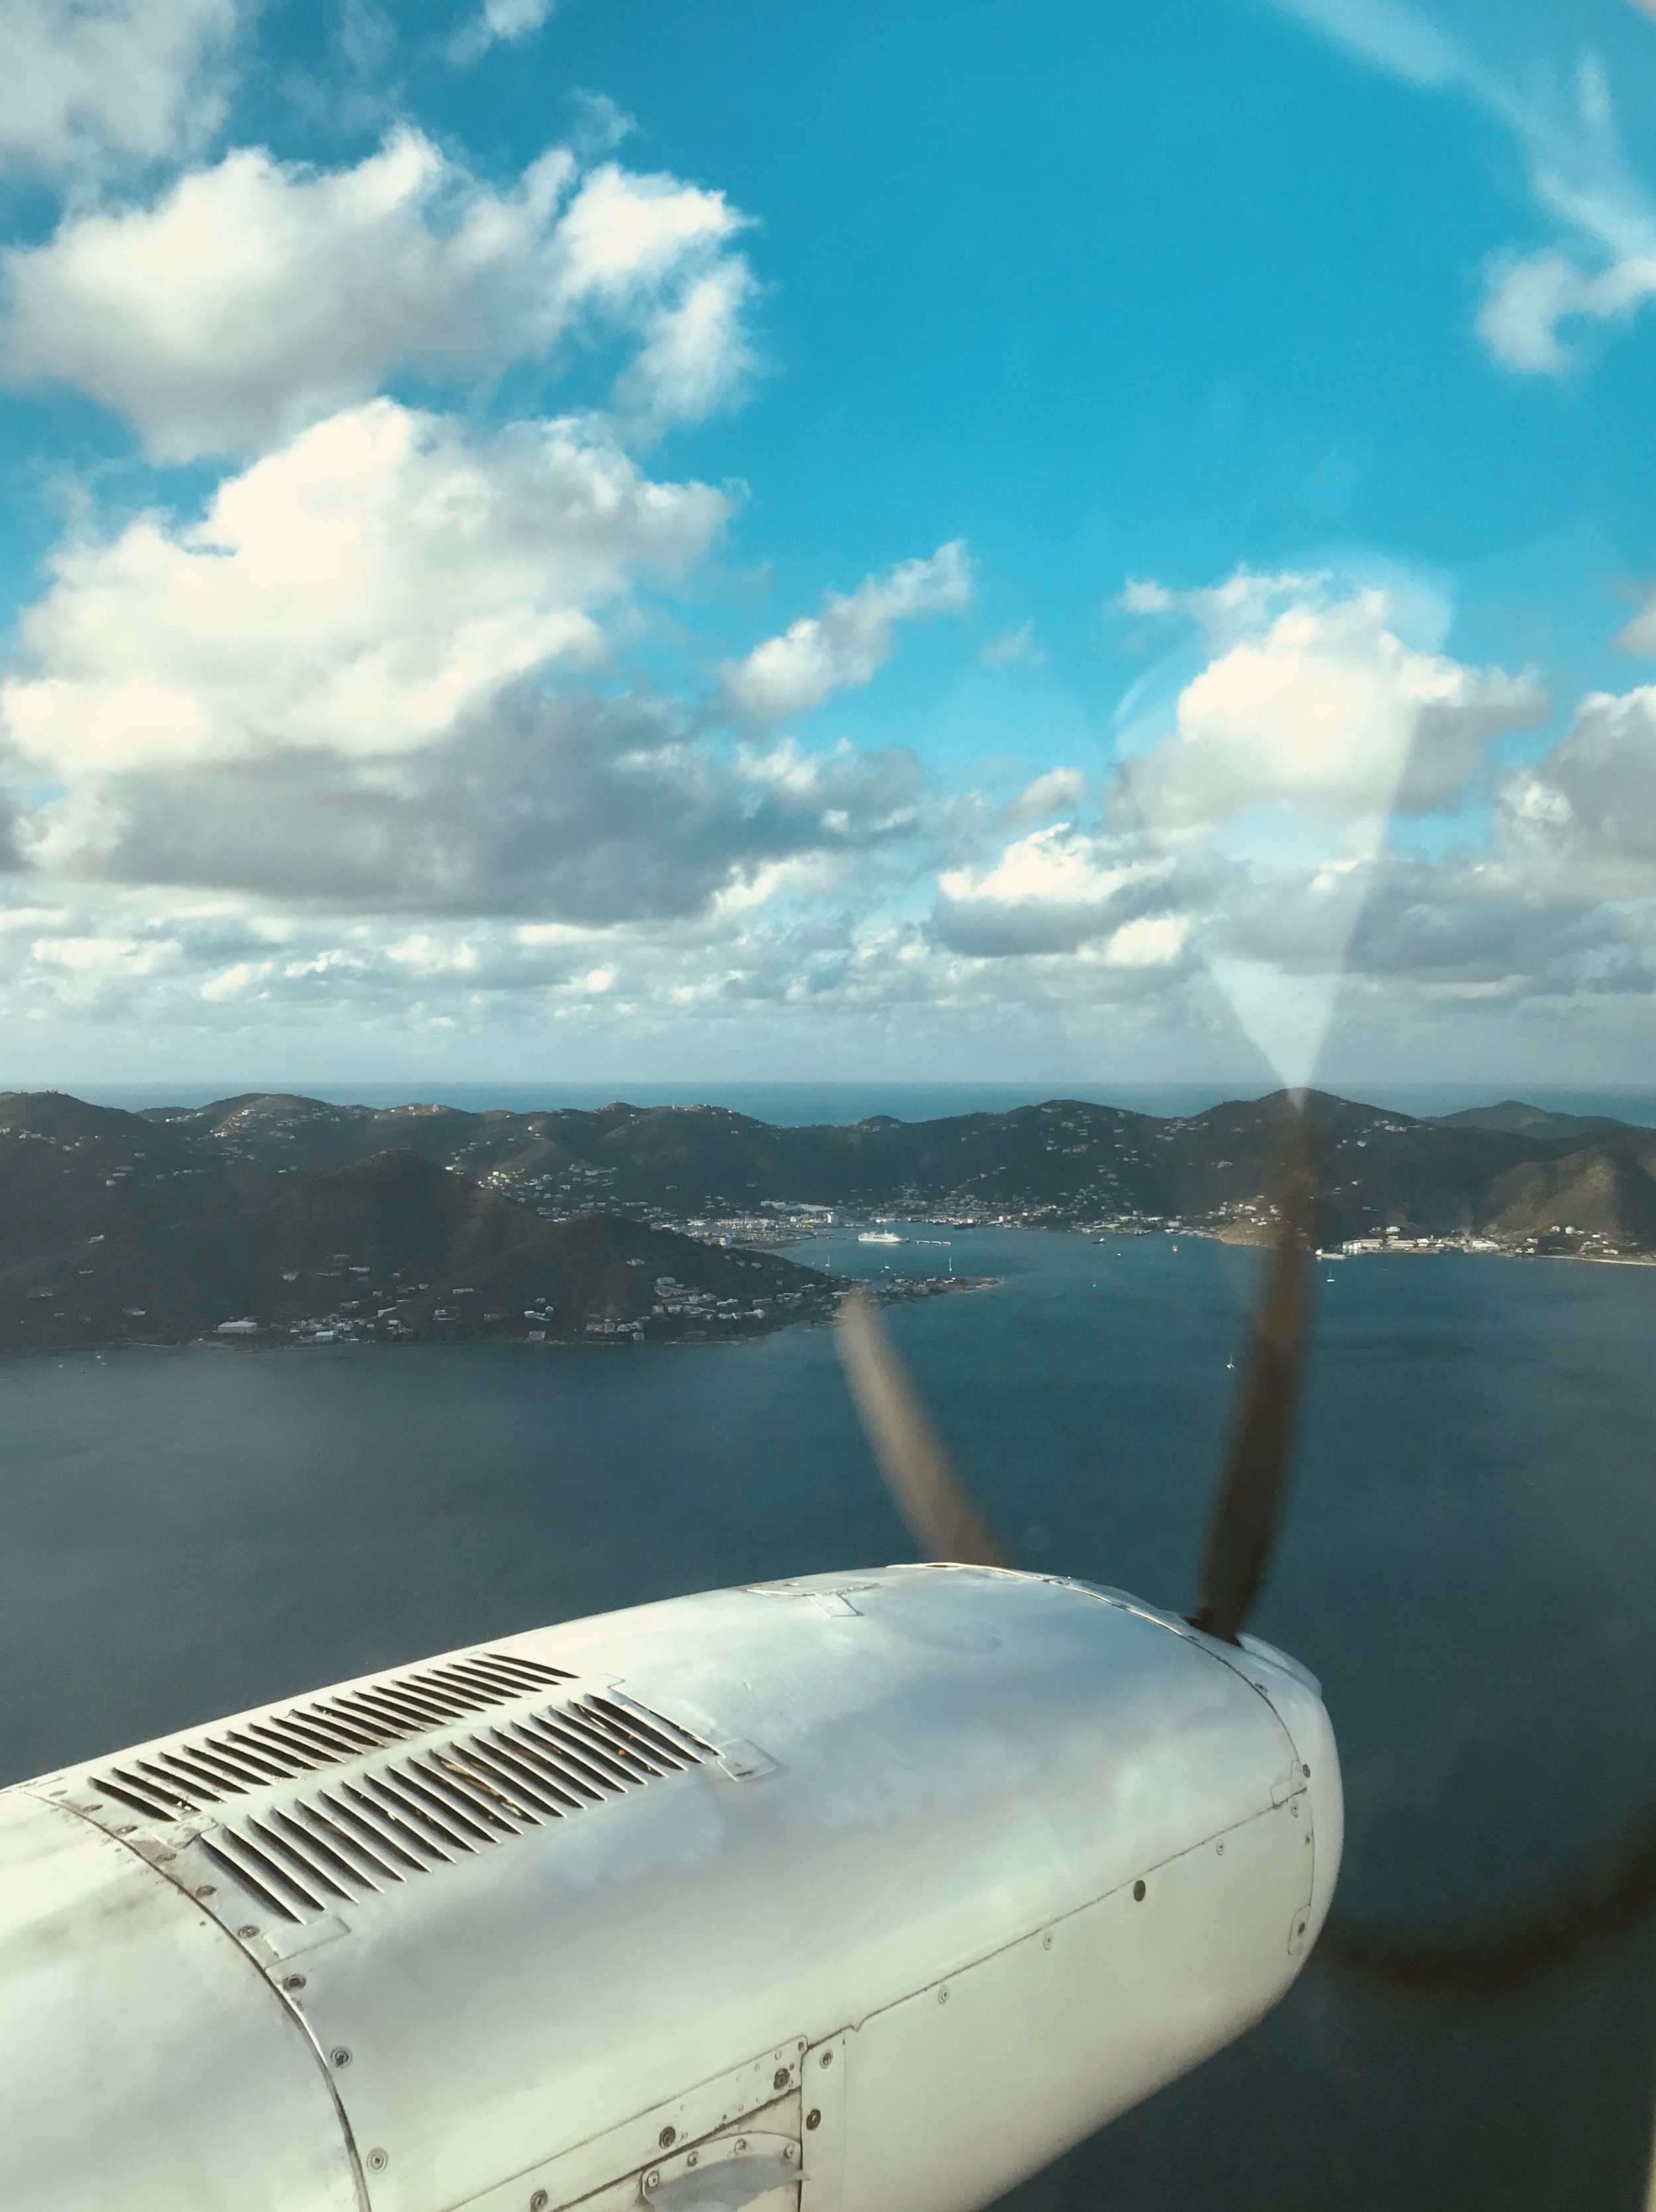 Our long awaited approach to Tortola.